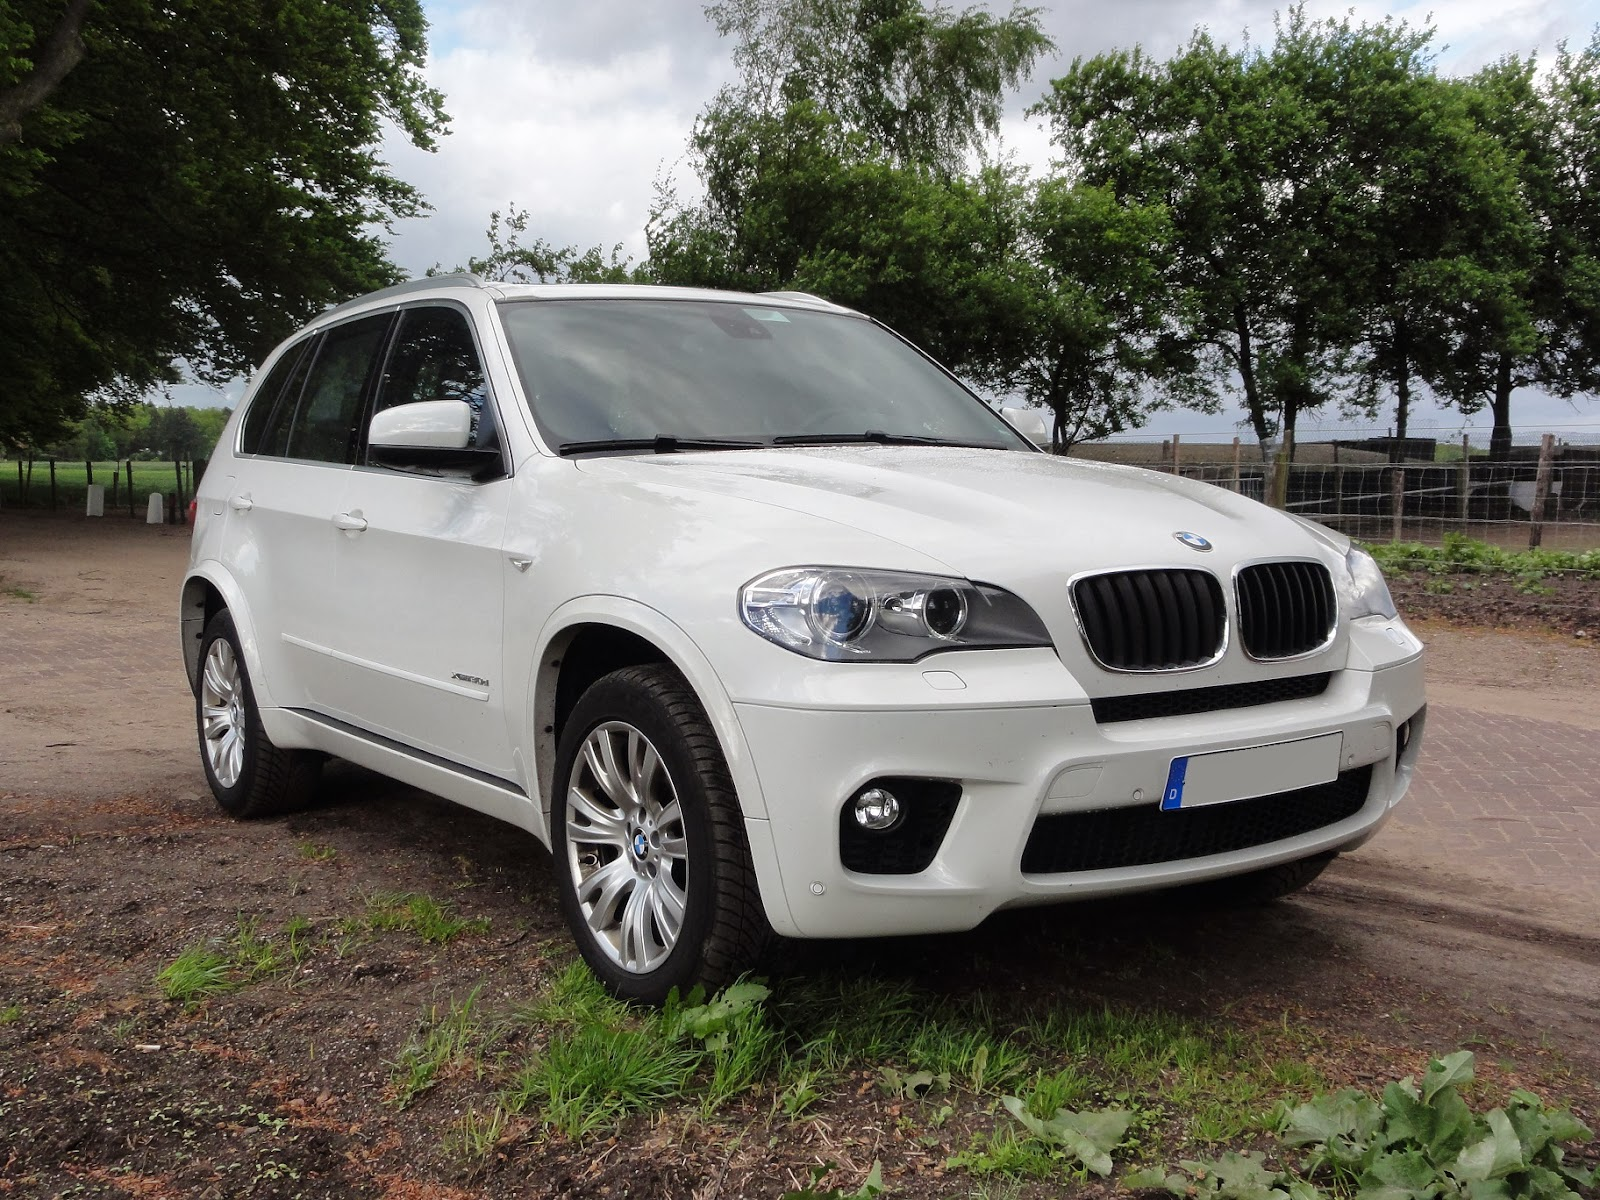 guitigefilmpjes picture update bmw x5 xdrive30d lci 2012 e70. Black Bedroom Furniture Sets. Home Design Ideas